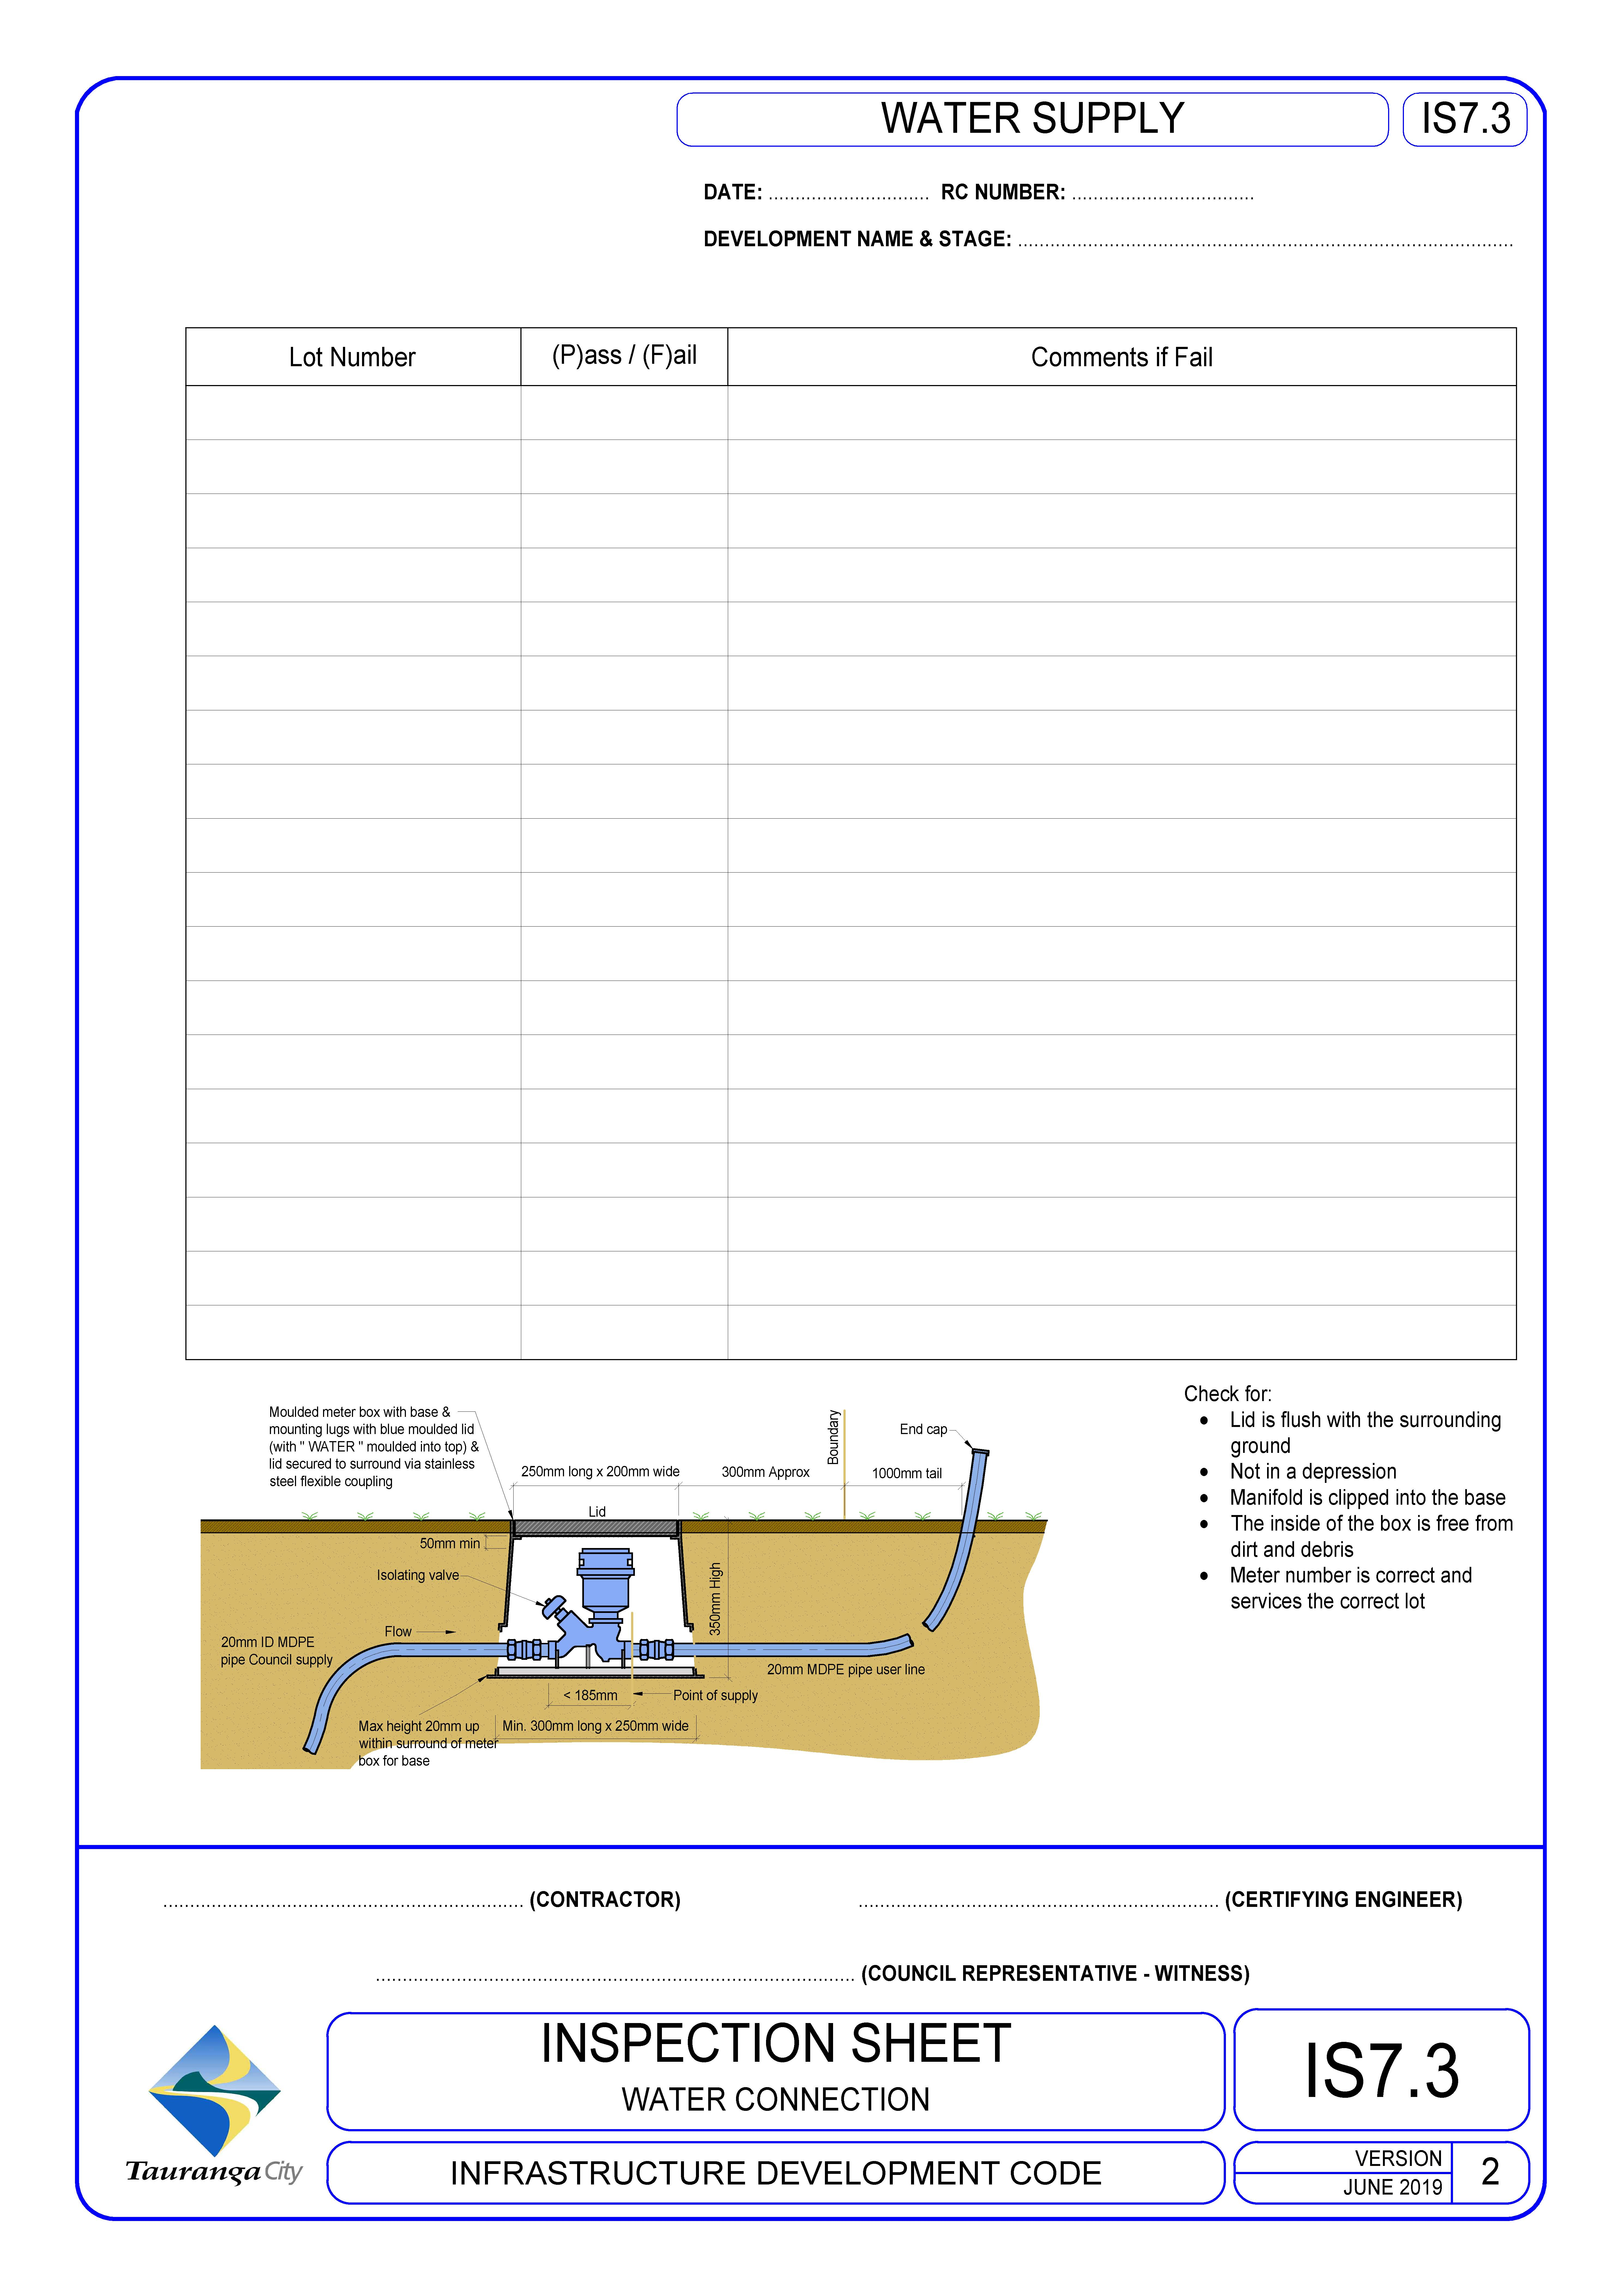 Inspection Sheet - Water Connection